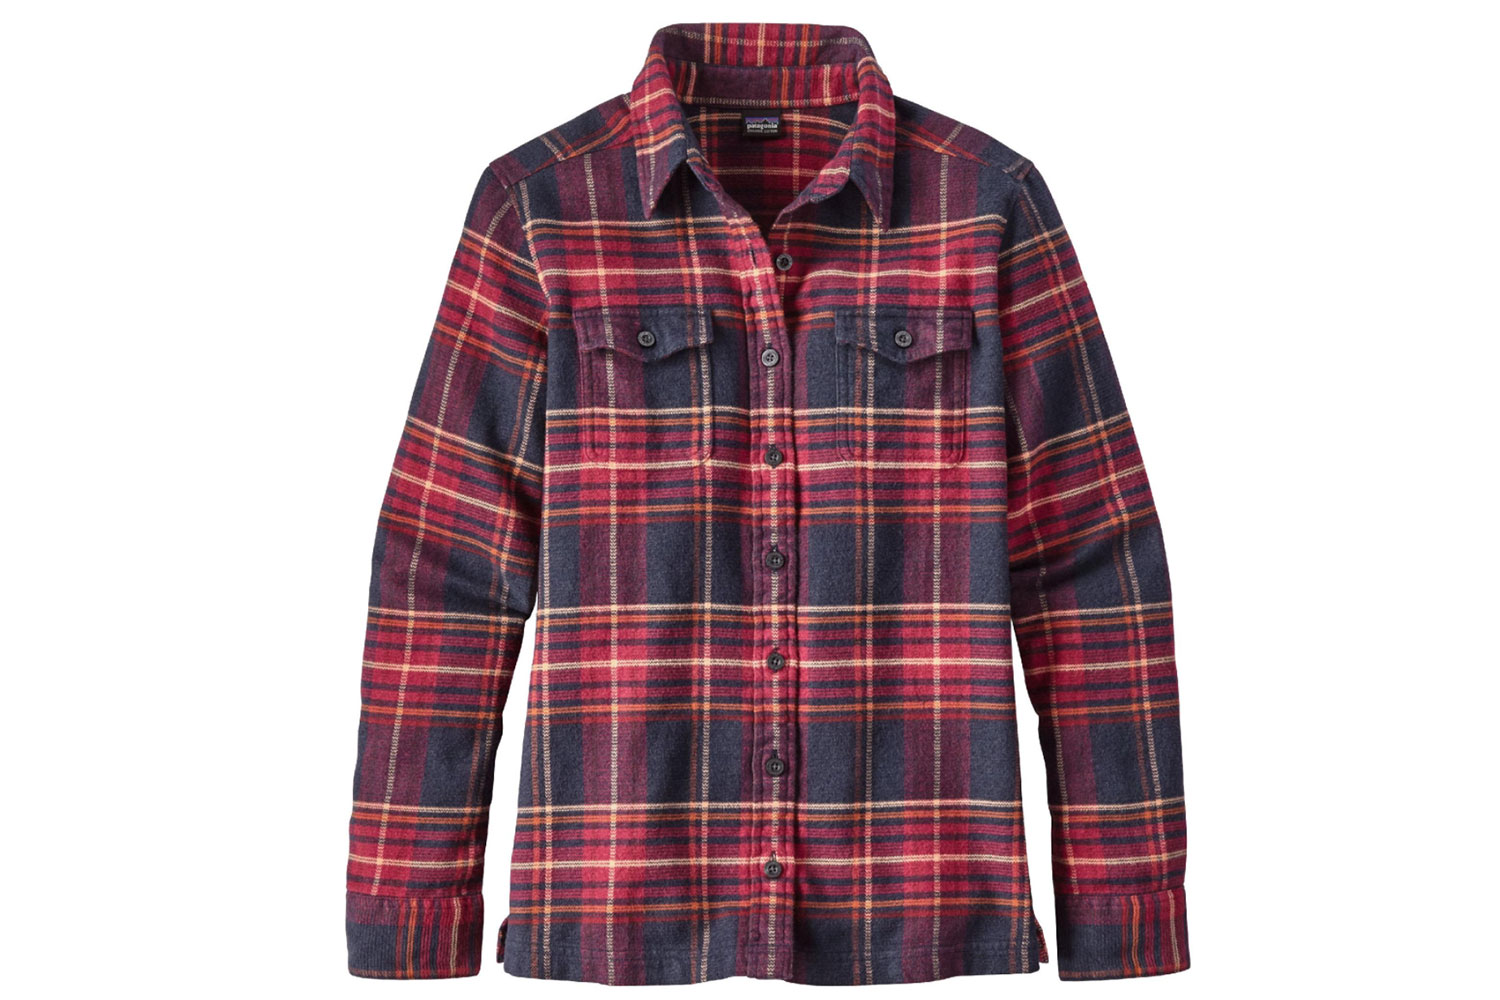 Quick Post To Make Sure Check The Hooké New 2016 Fall Collection I Particularly Love Canadian Lumberjack Shirt